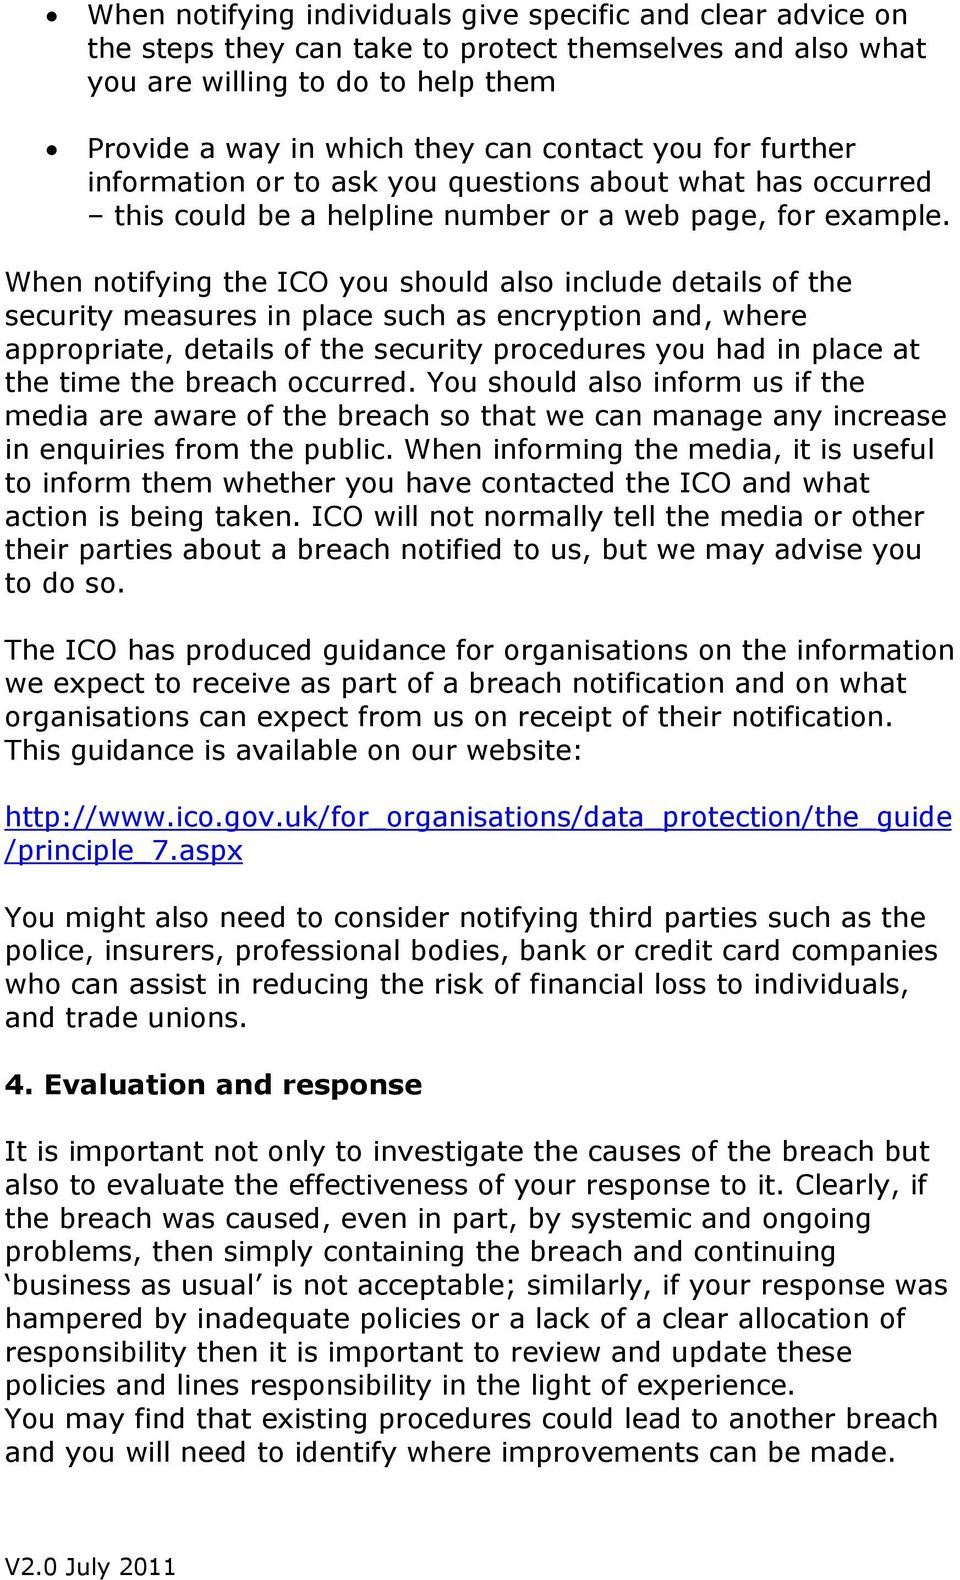 When notifying the ICO you should also include details of the security measures in place such as encryption and, where appropriate, details of the security procedures you had in place at the time the